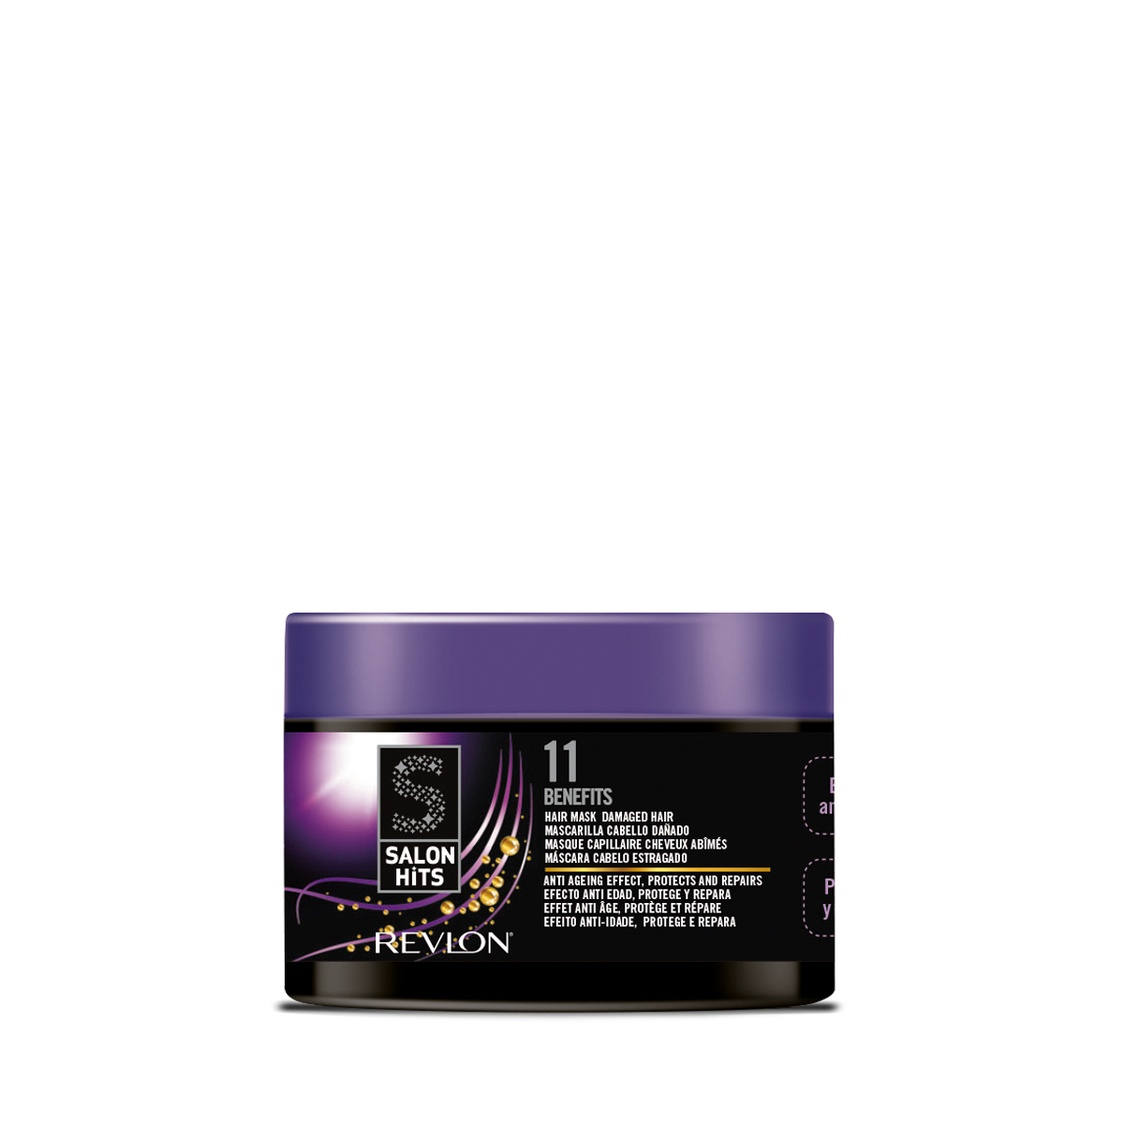 Salon Hits 11 Benefits Mask  Serum